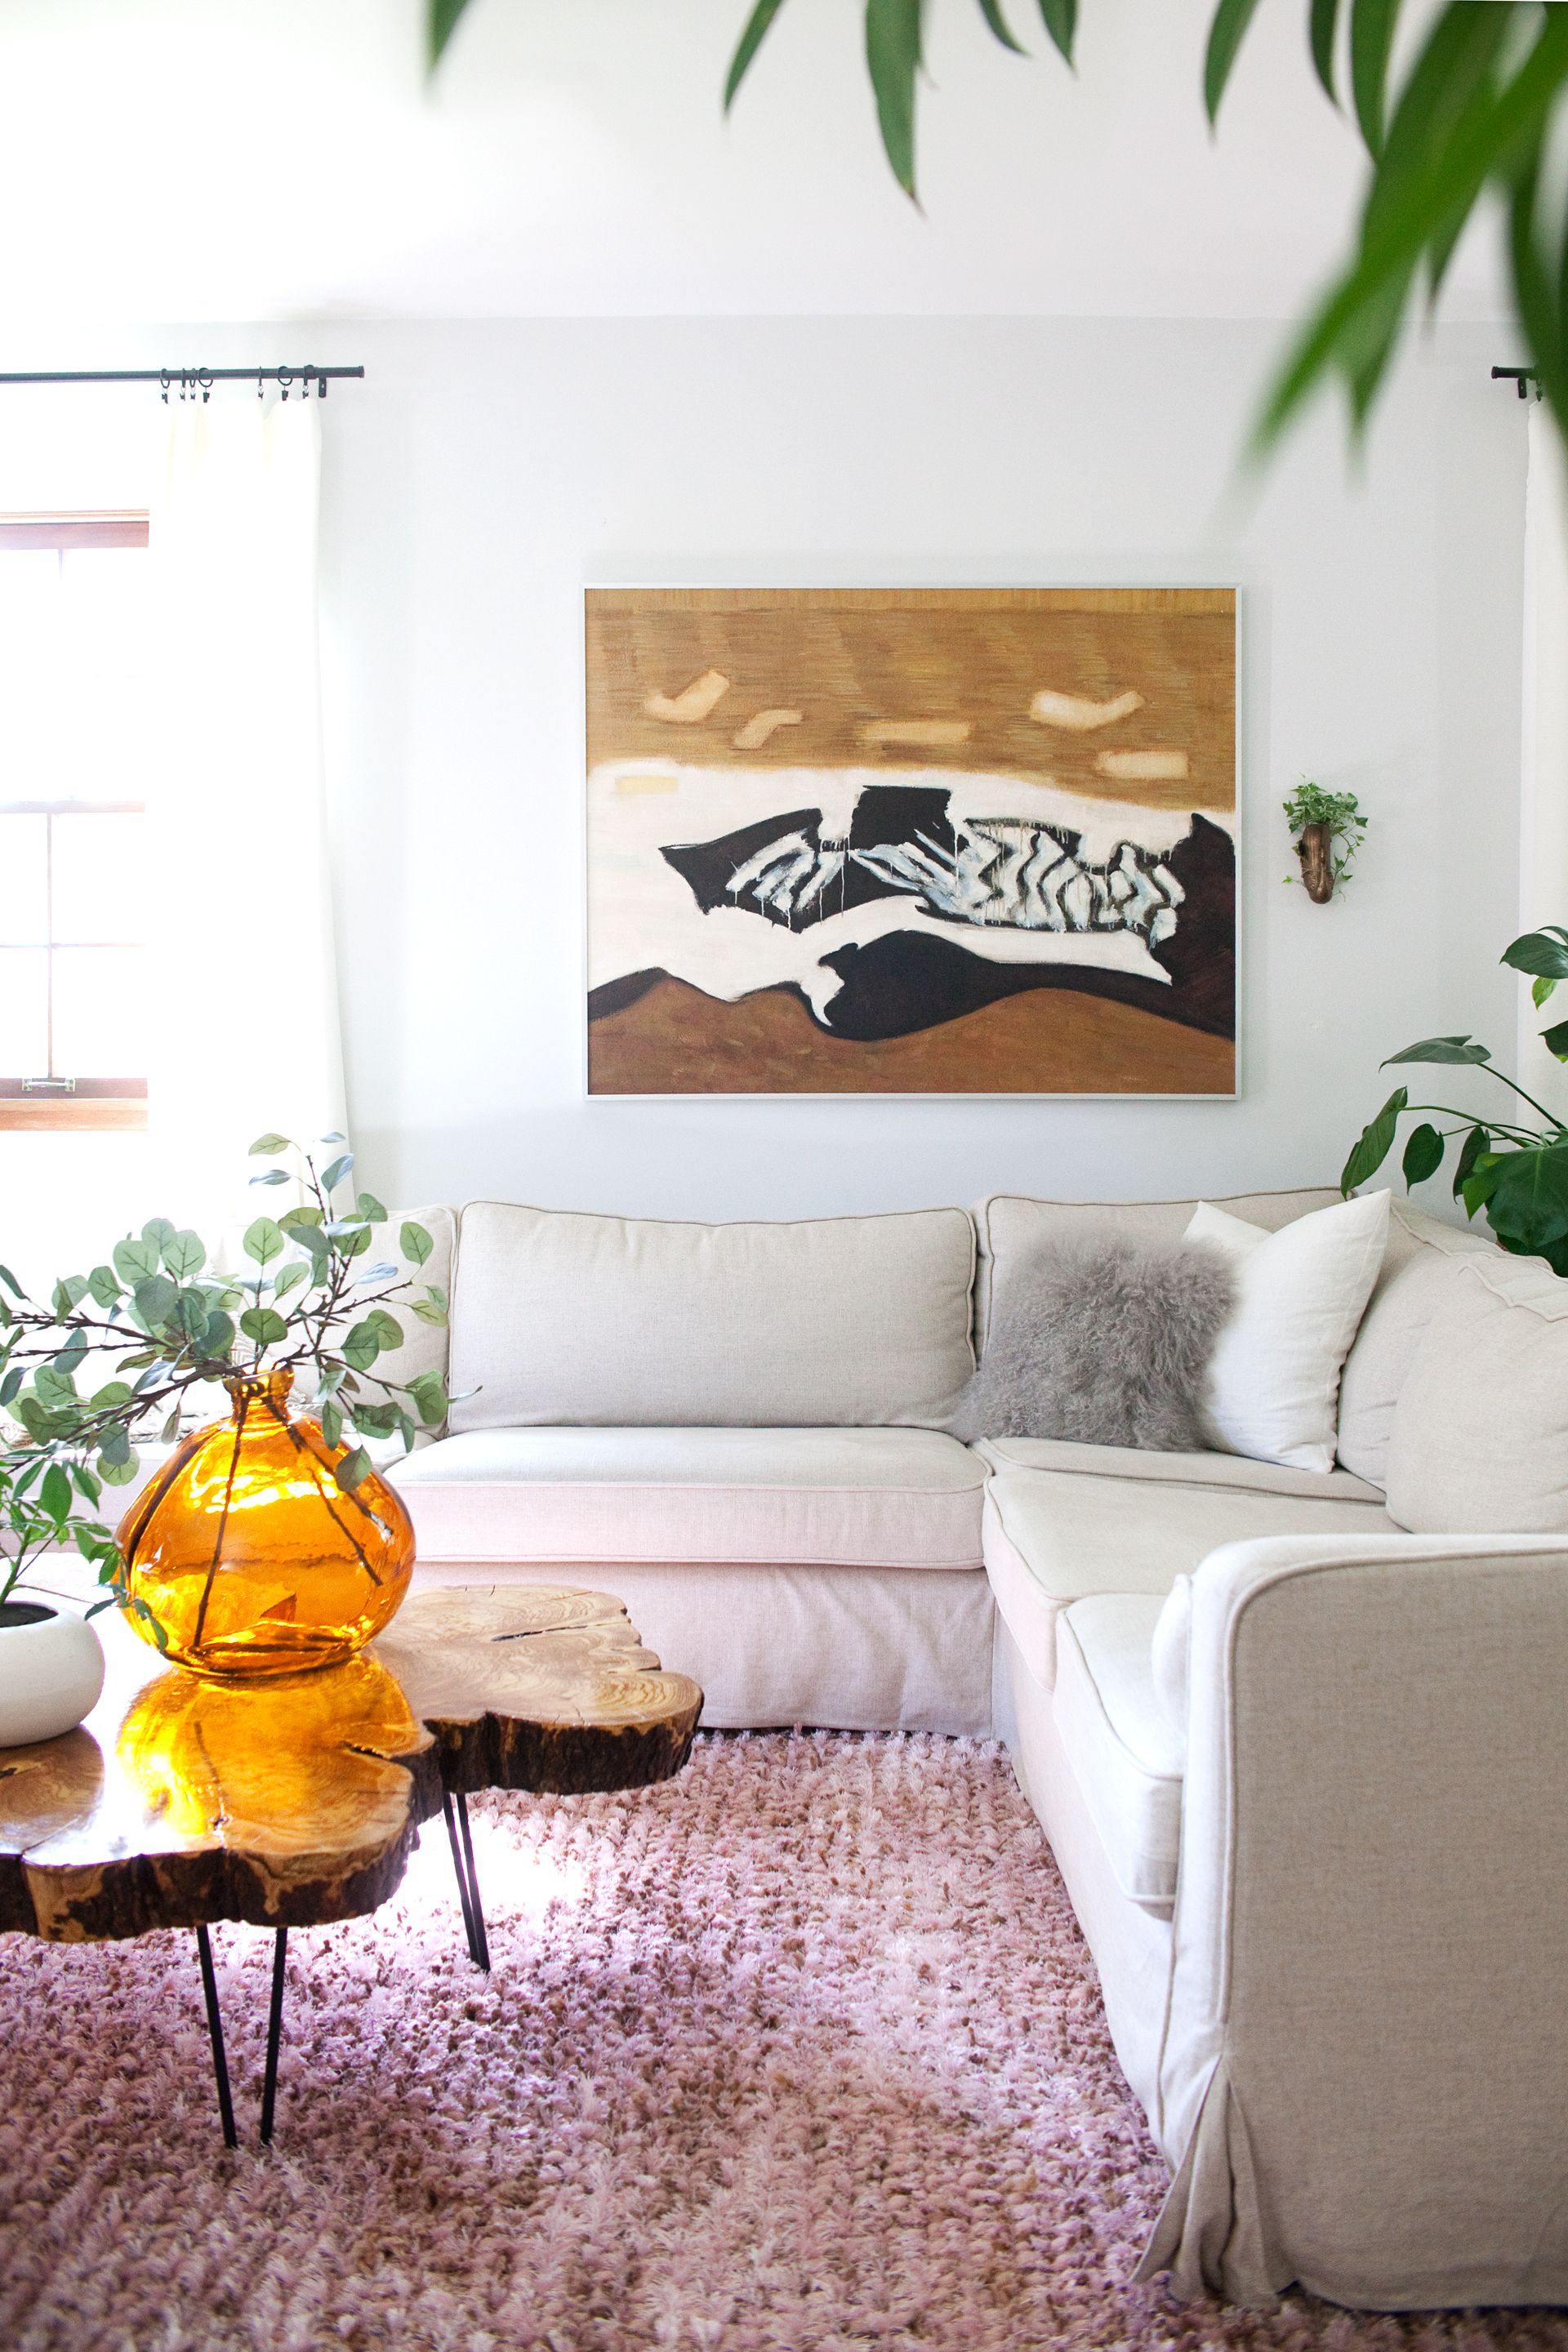 Easy Tips for Redecorating a Room plus a pany that makes